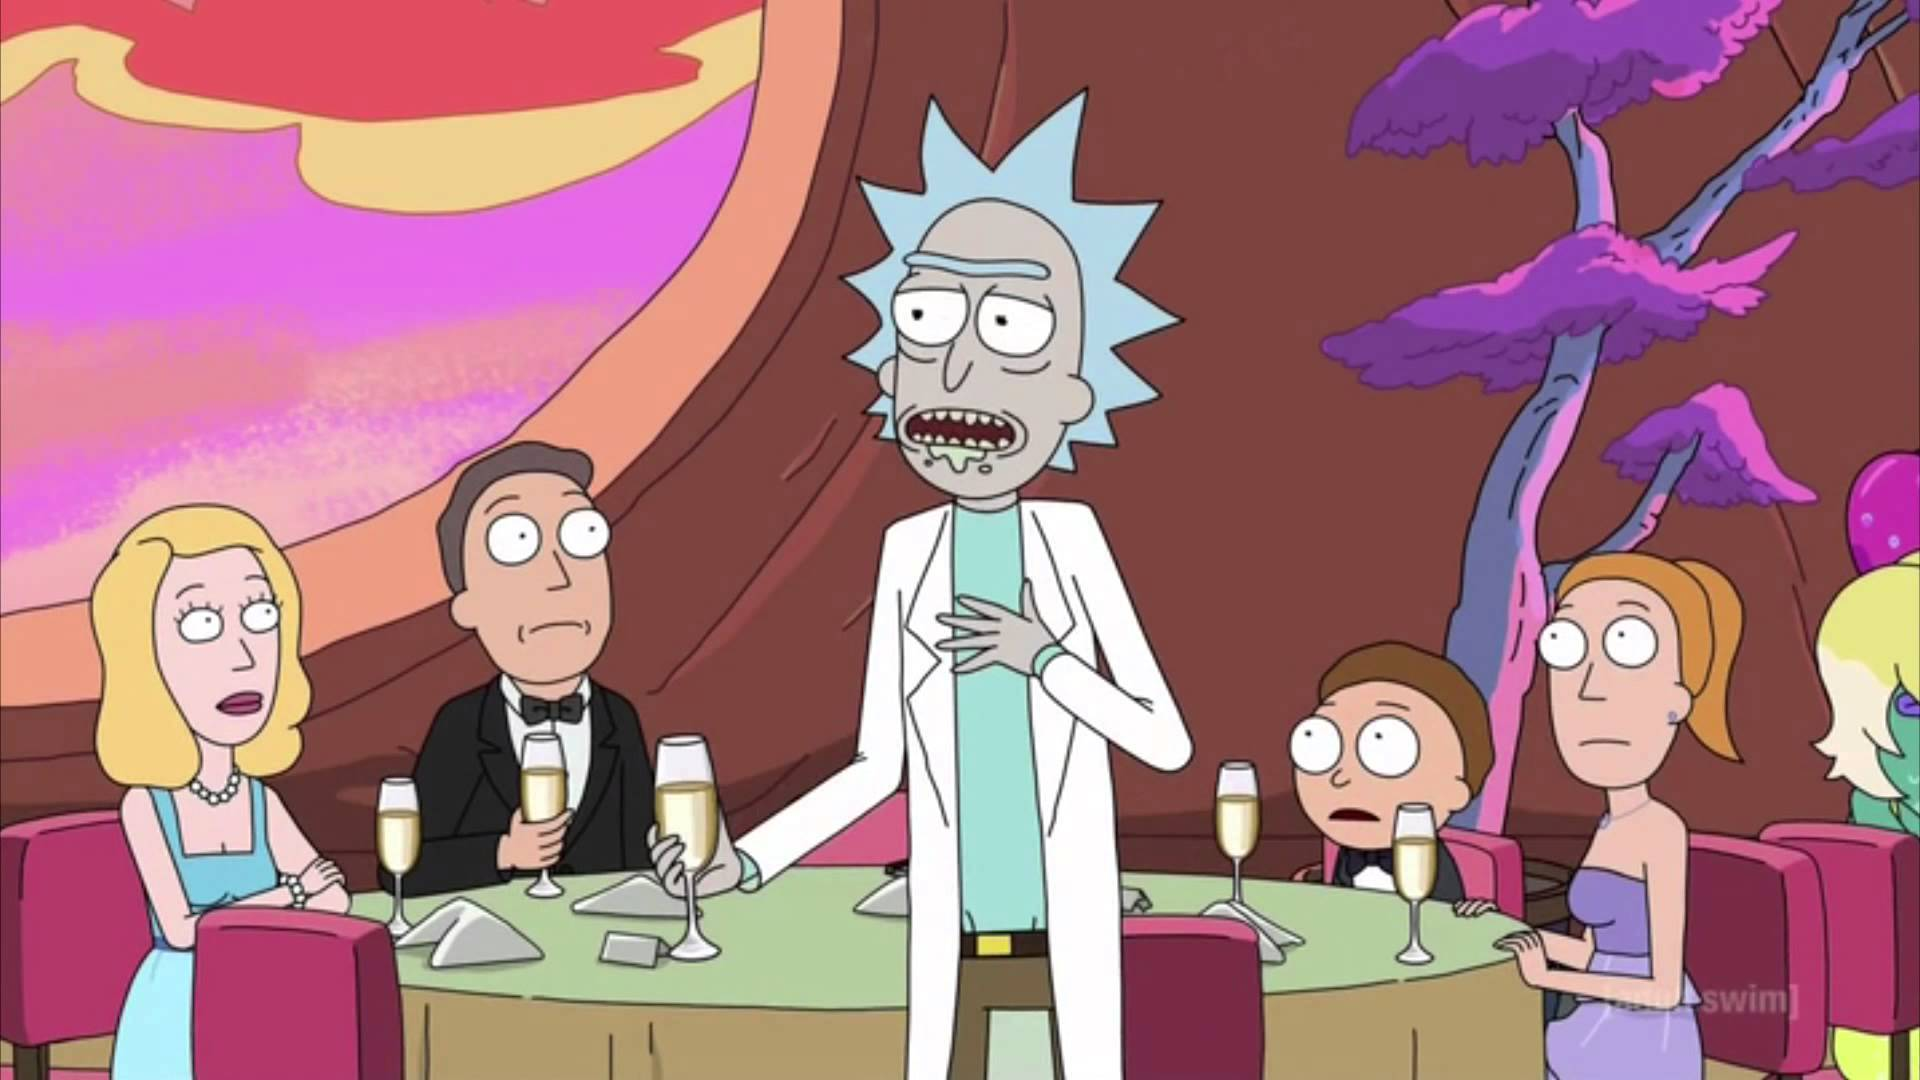 Best Rick And Morty Quotes Entrancing The 11 Best Rick And Morty Quotes In Honor Of Season 3's Return